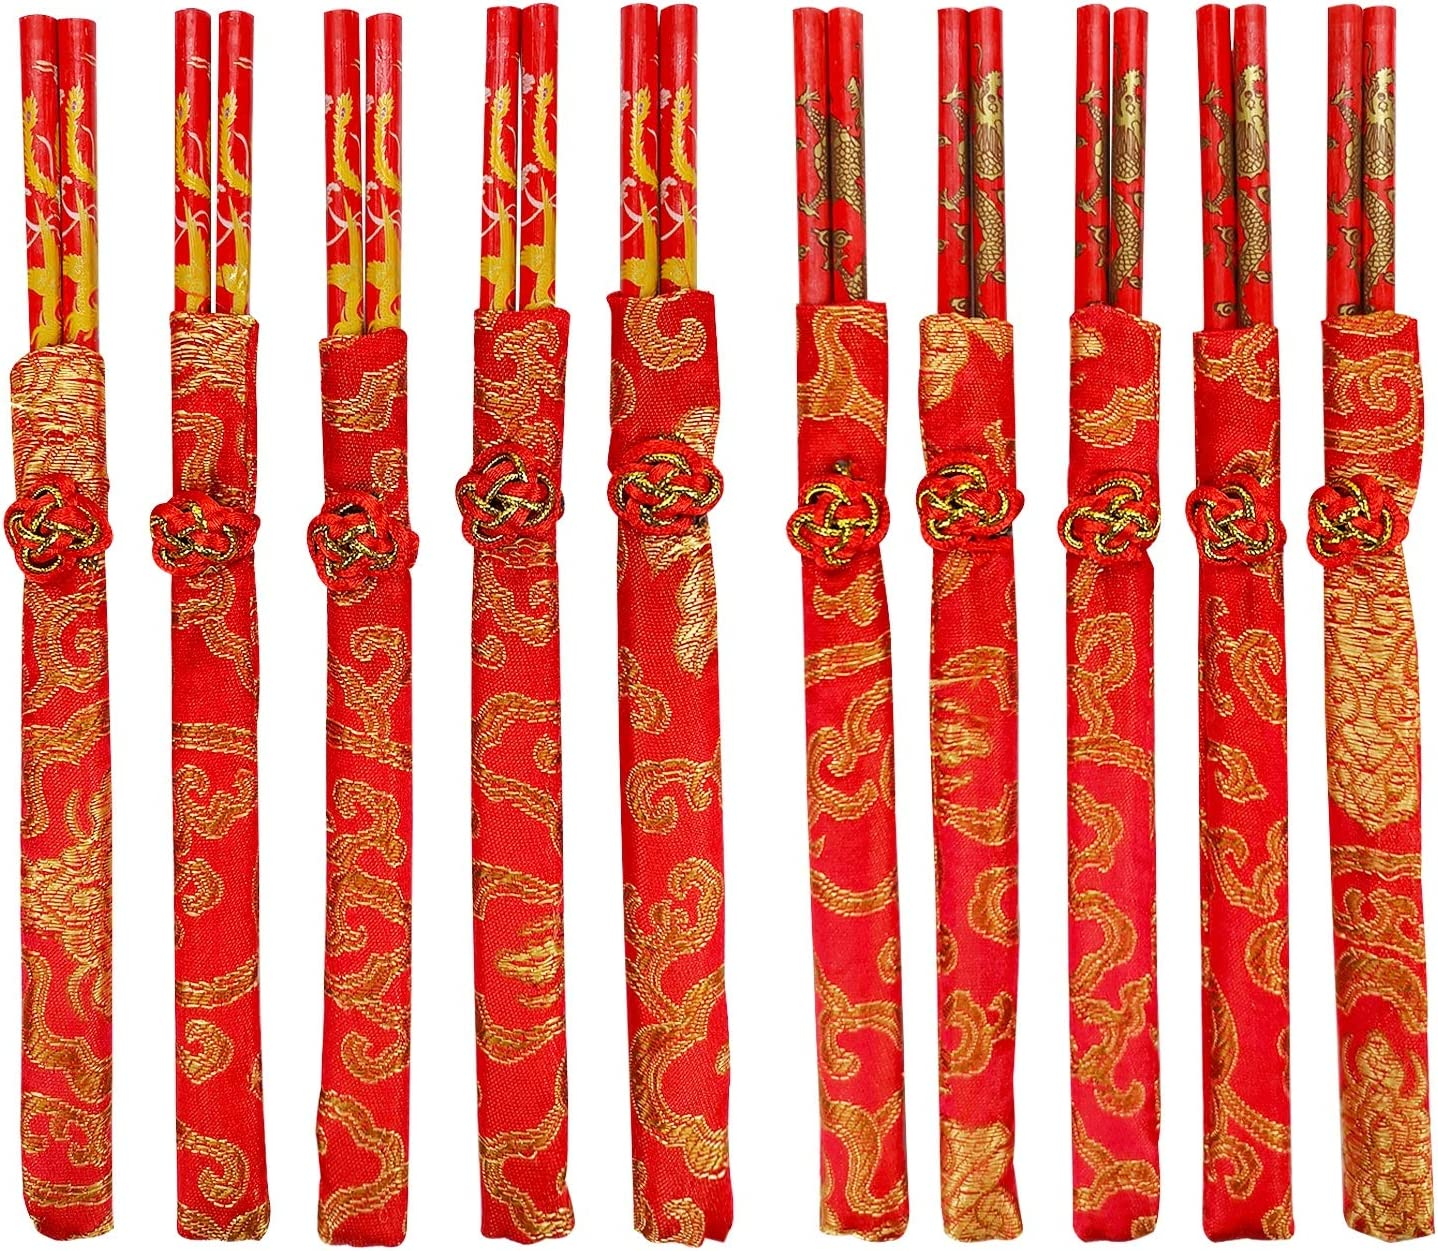 CheeseandU 10Pairs Chinese Knot Red Wood Chopsticks Durable Household Food Stick with Gold Dragon Phoenix Pattern Printed Tableware Chopstick Set Wedding Gift Christmas Gift 2021 New Year Gift